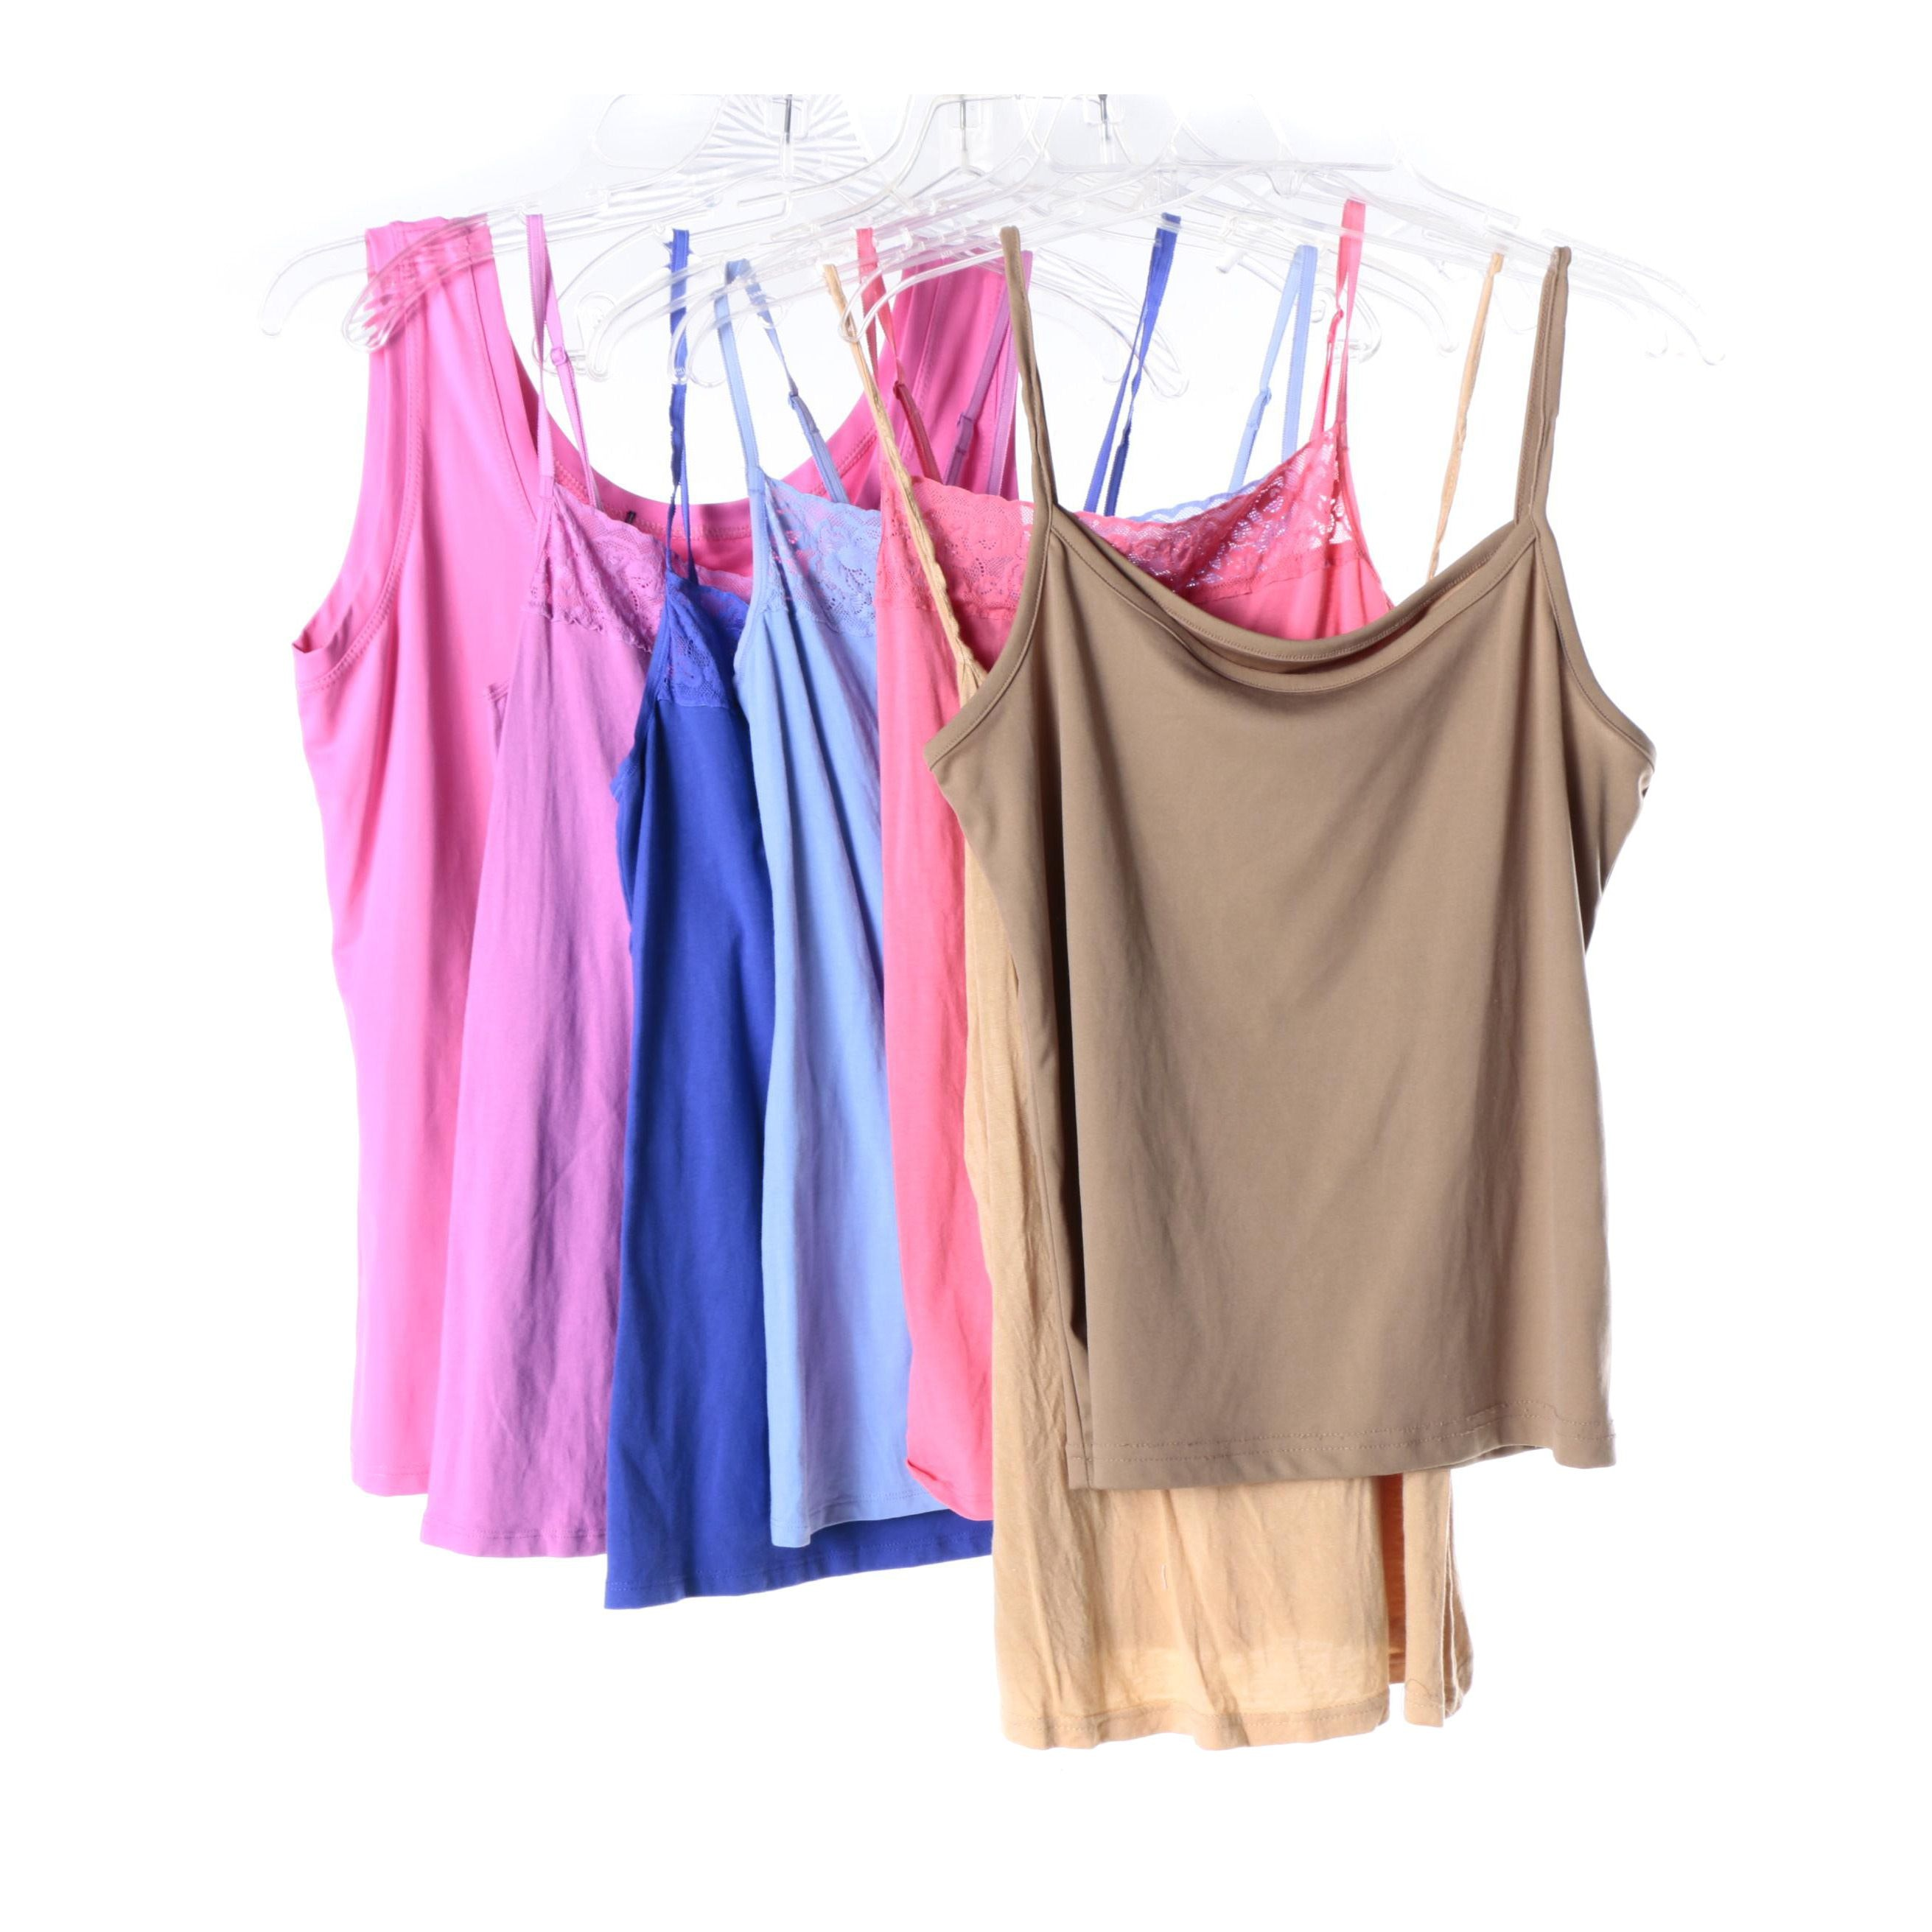 Women's Camisoles and Tank Tops Including Felina